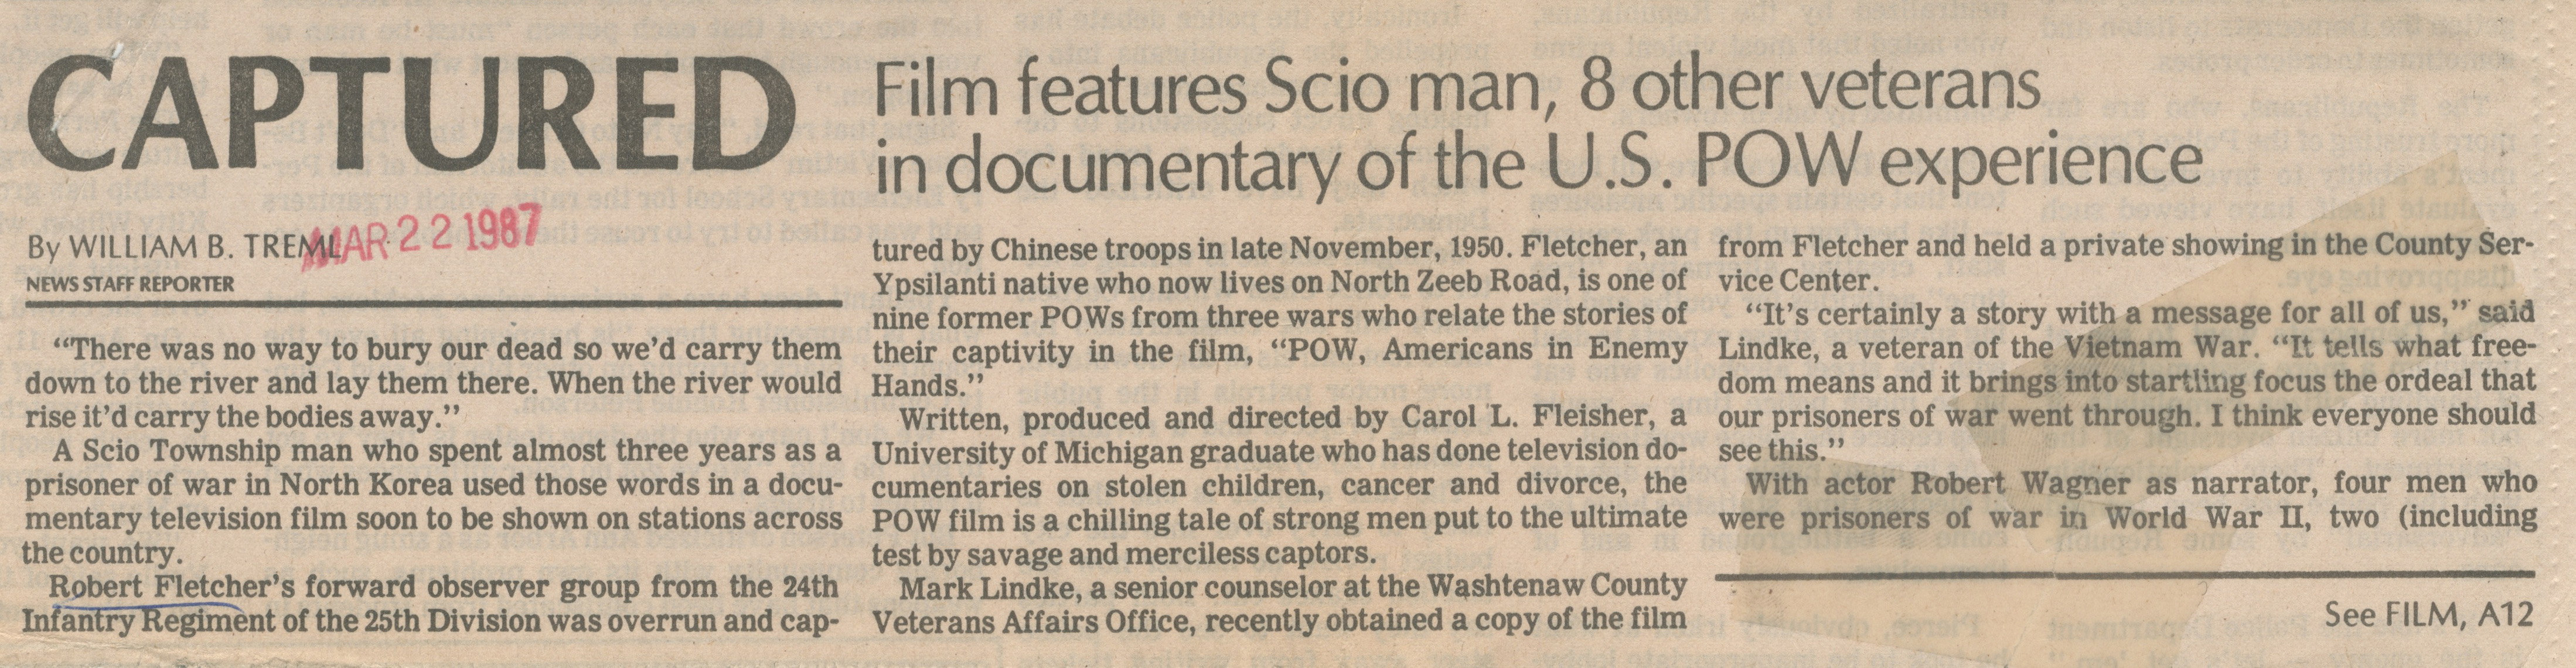 Captured: Film Features Scio Man, 8 Other Veterans in Documentary of the U.S. POW Experience image